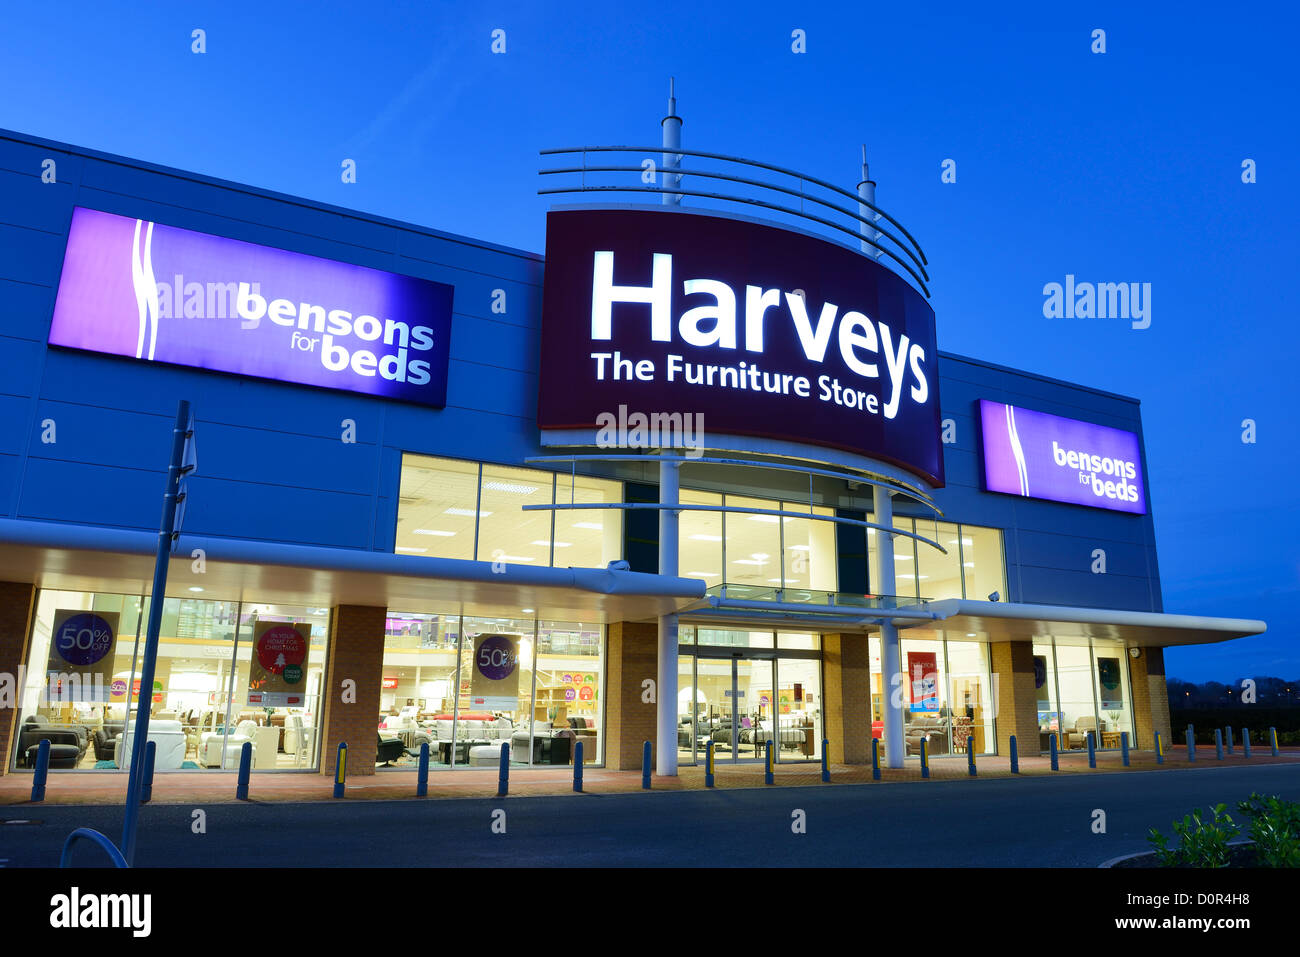 Harveys Furniture Store and Bensons for Beds - Stock Image